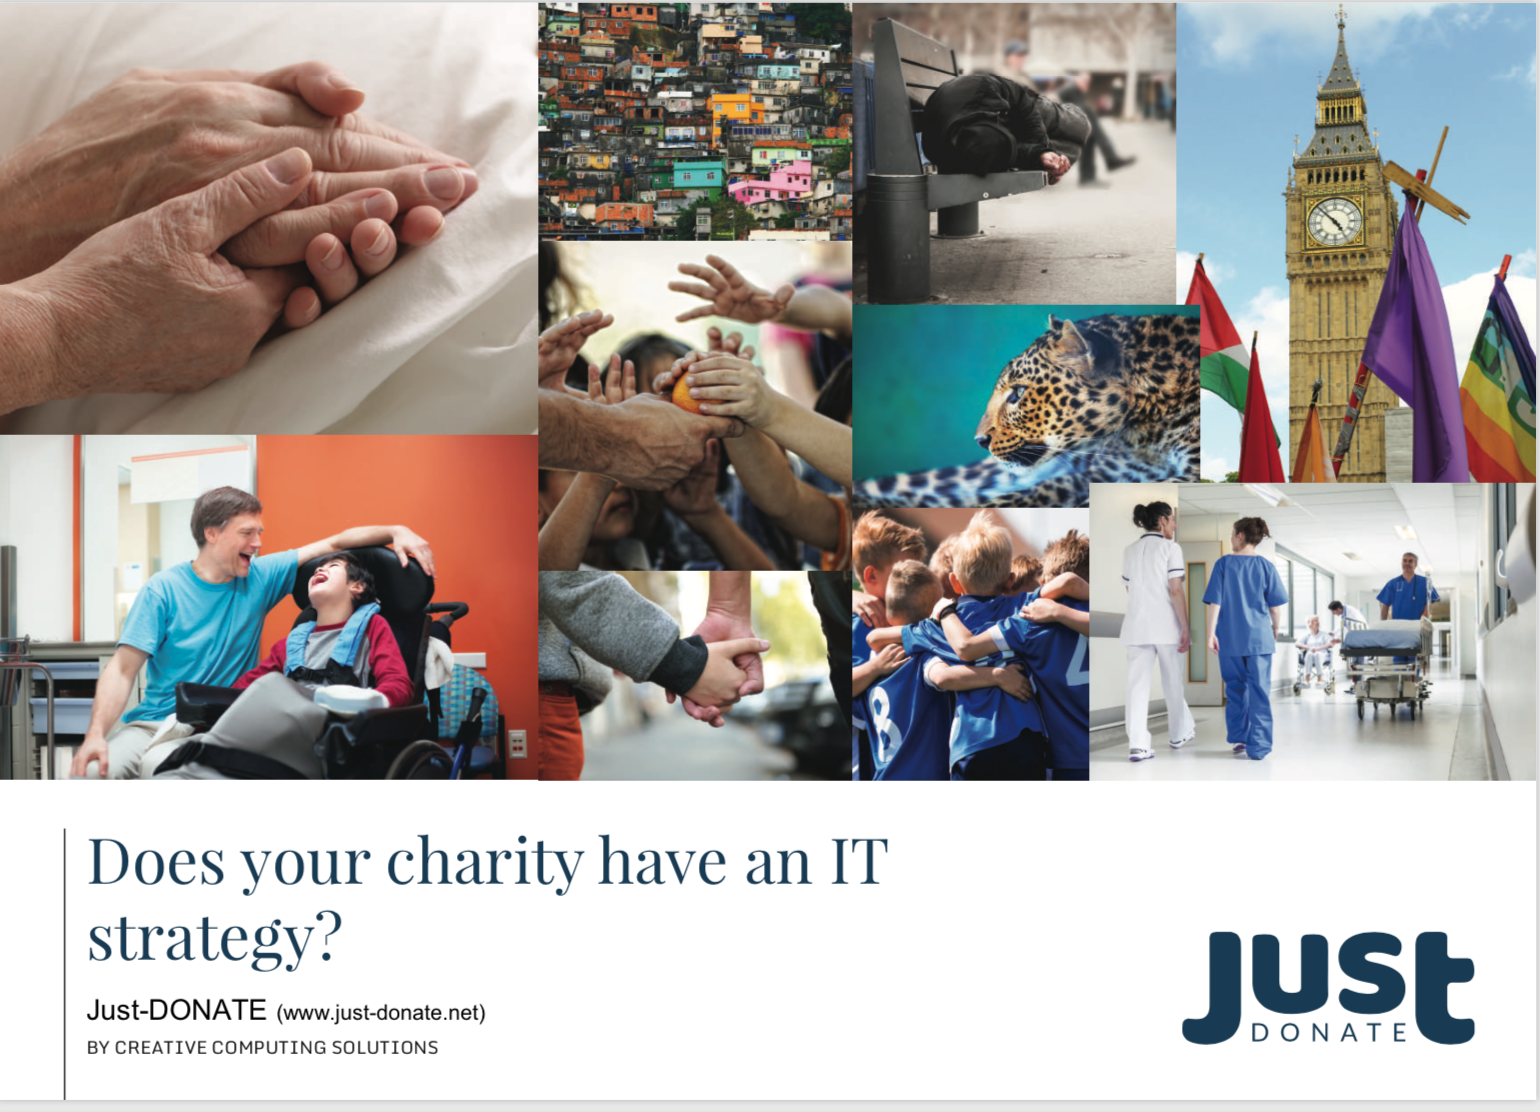 Just Donate - Does your charity have an IT strategy